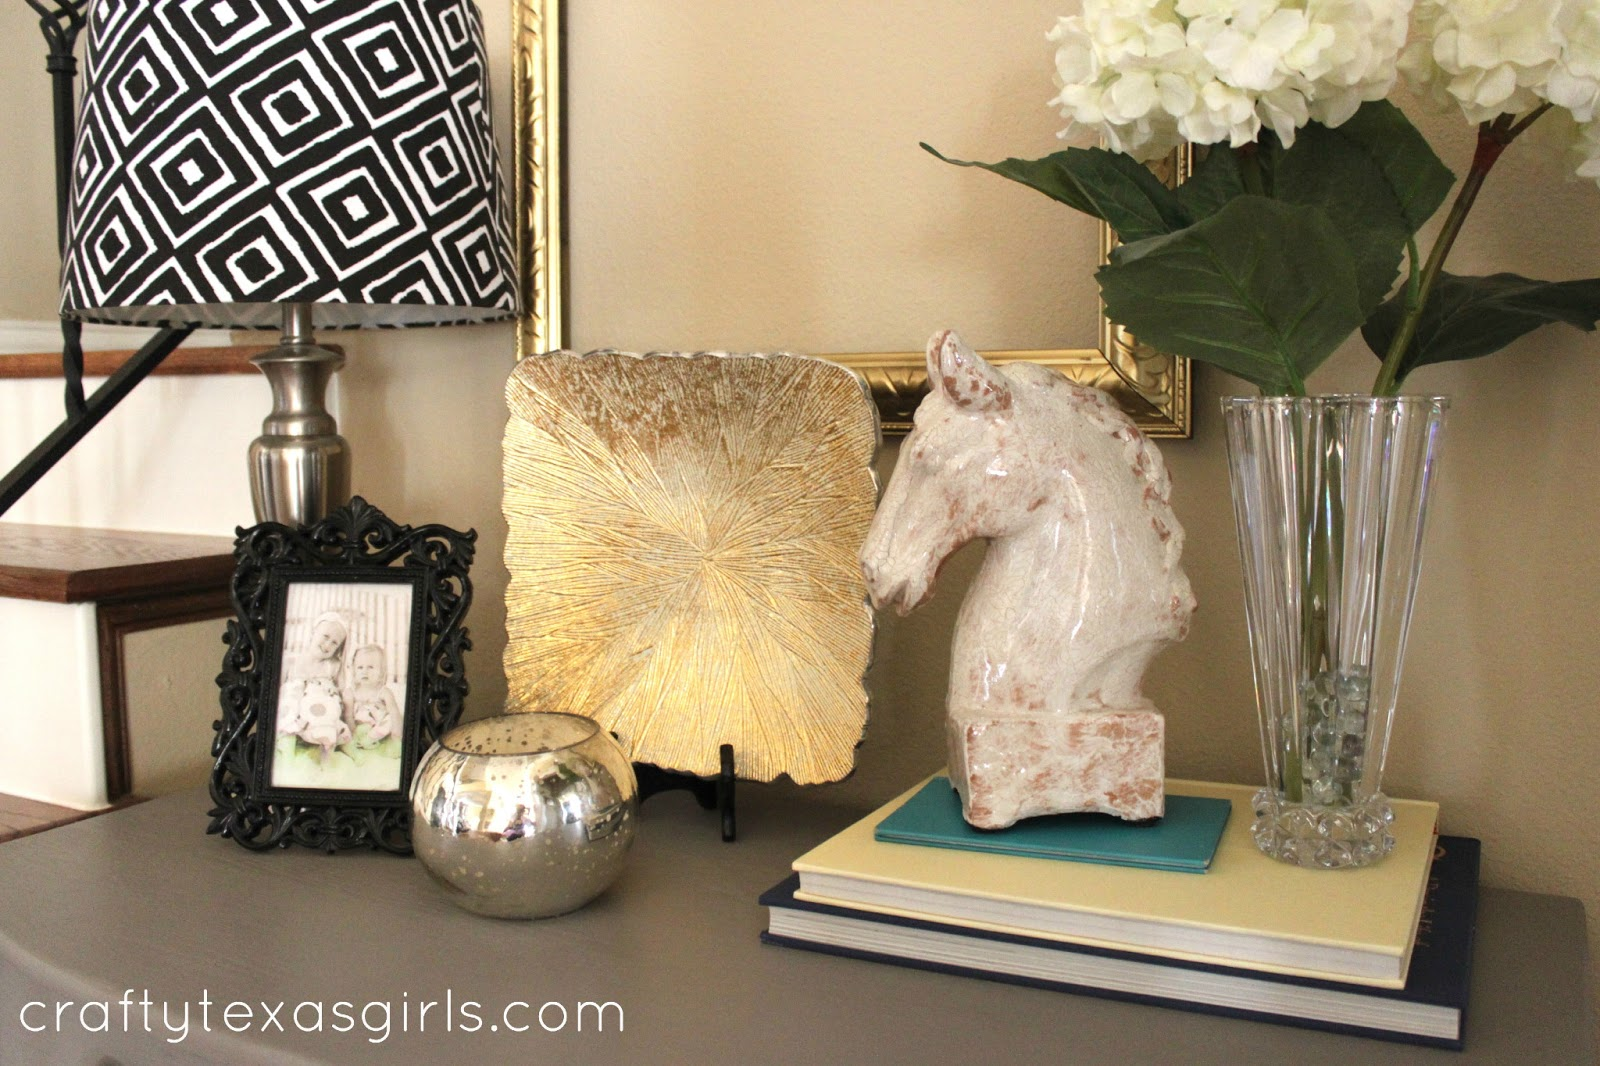 crafty texas girls home updates easy ideas for a fresh look a